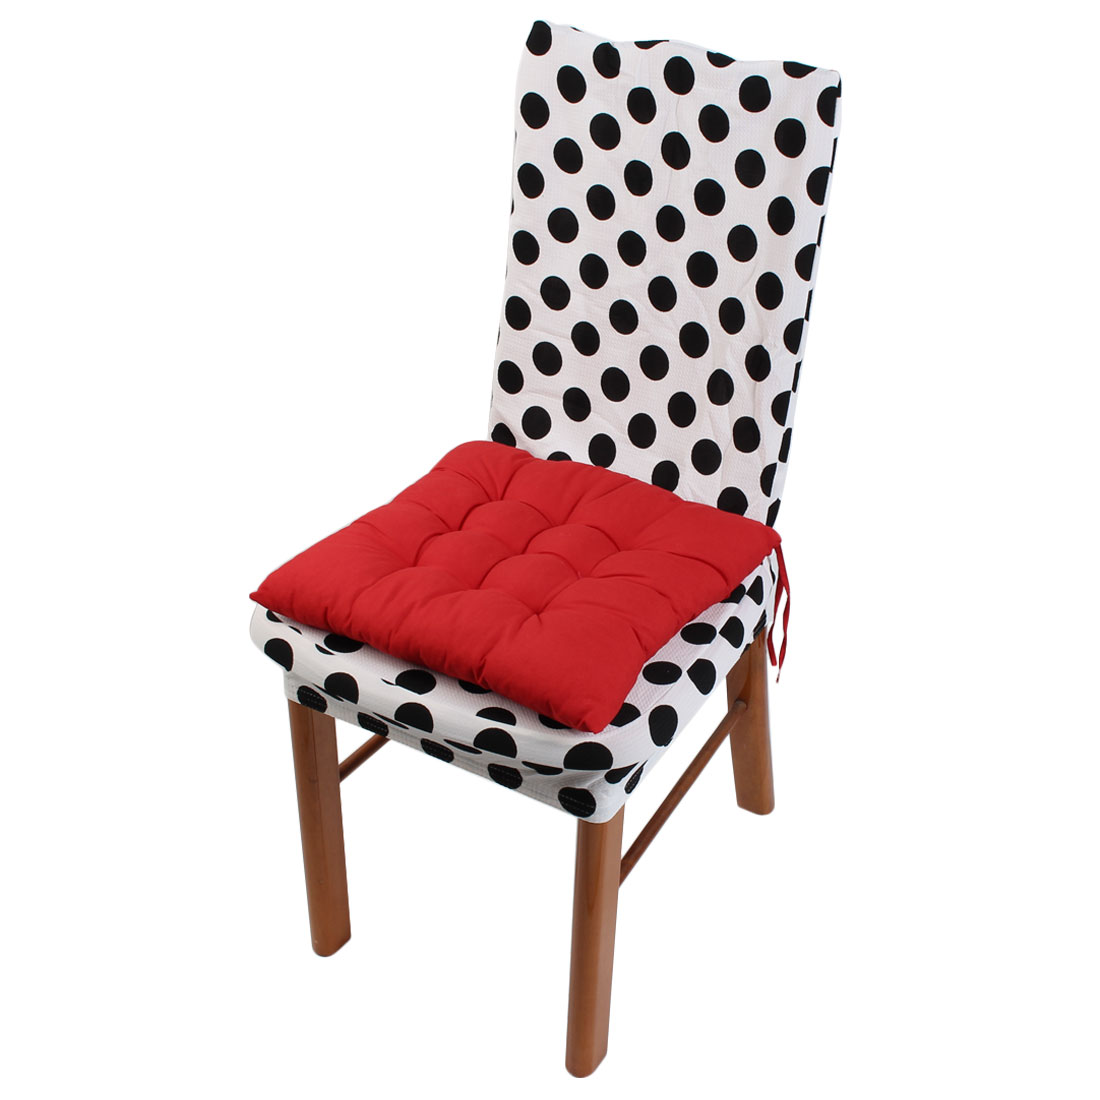 Indoor Outdoor Cotton Blends Strap Design Thickened Cushion Chair Buttocks Pad Red